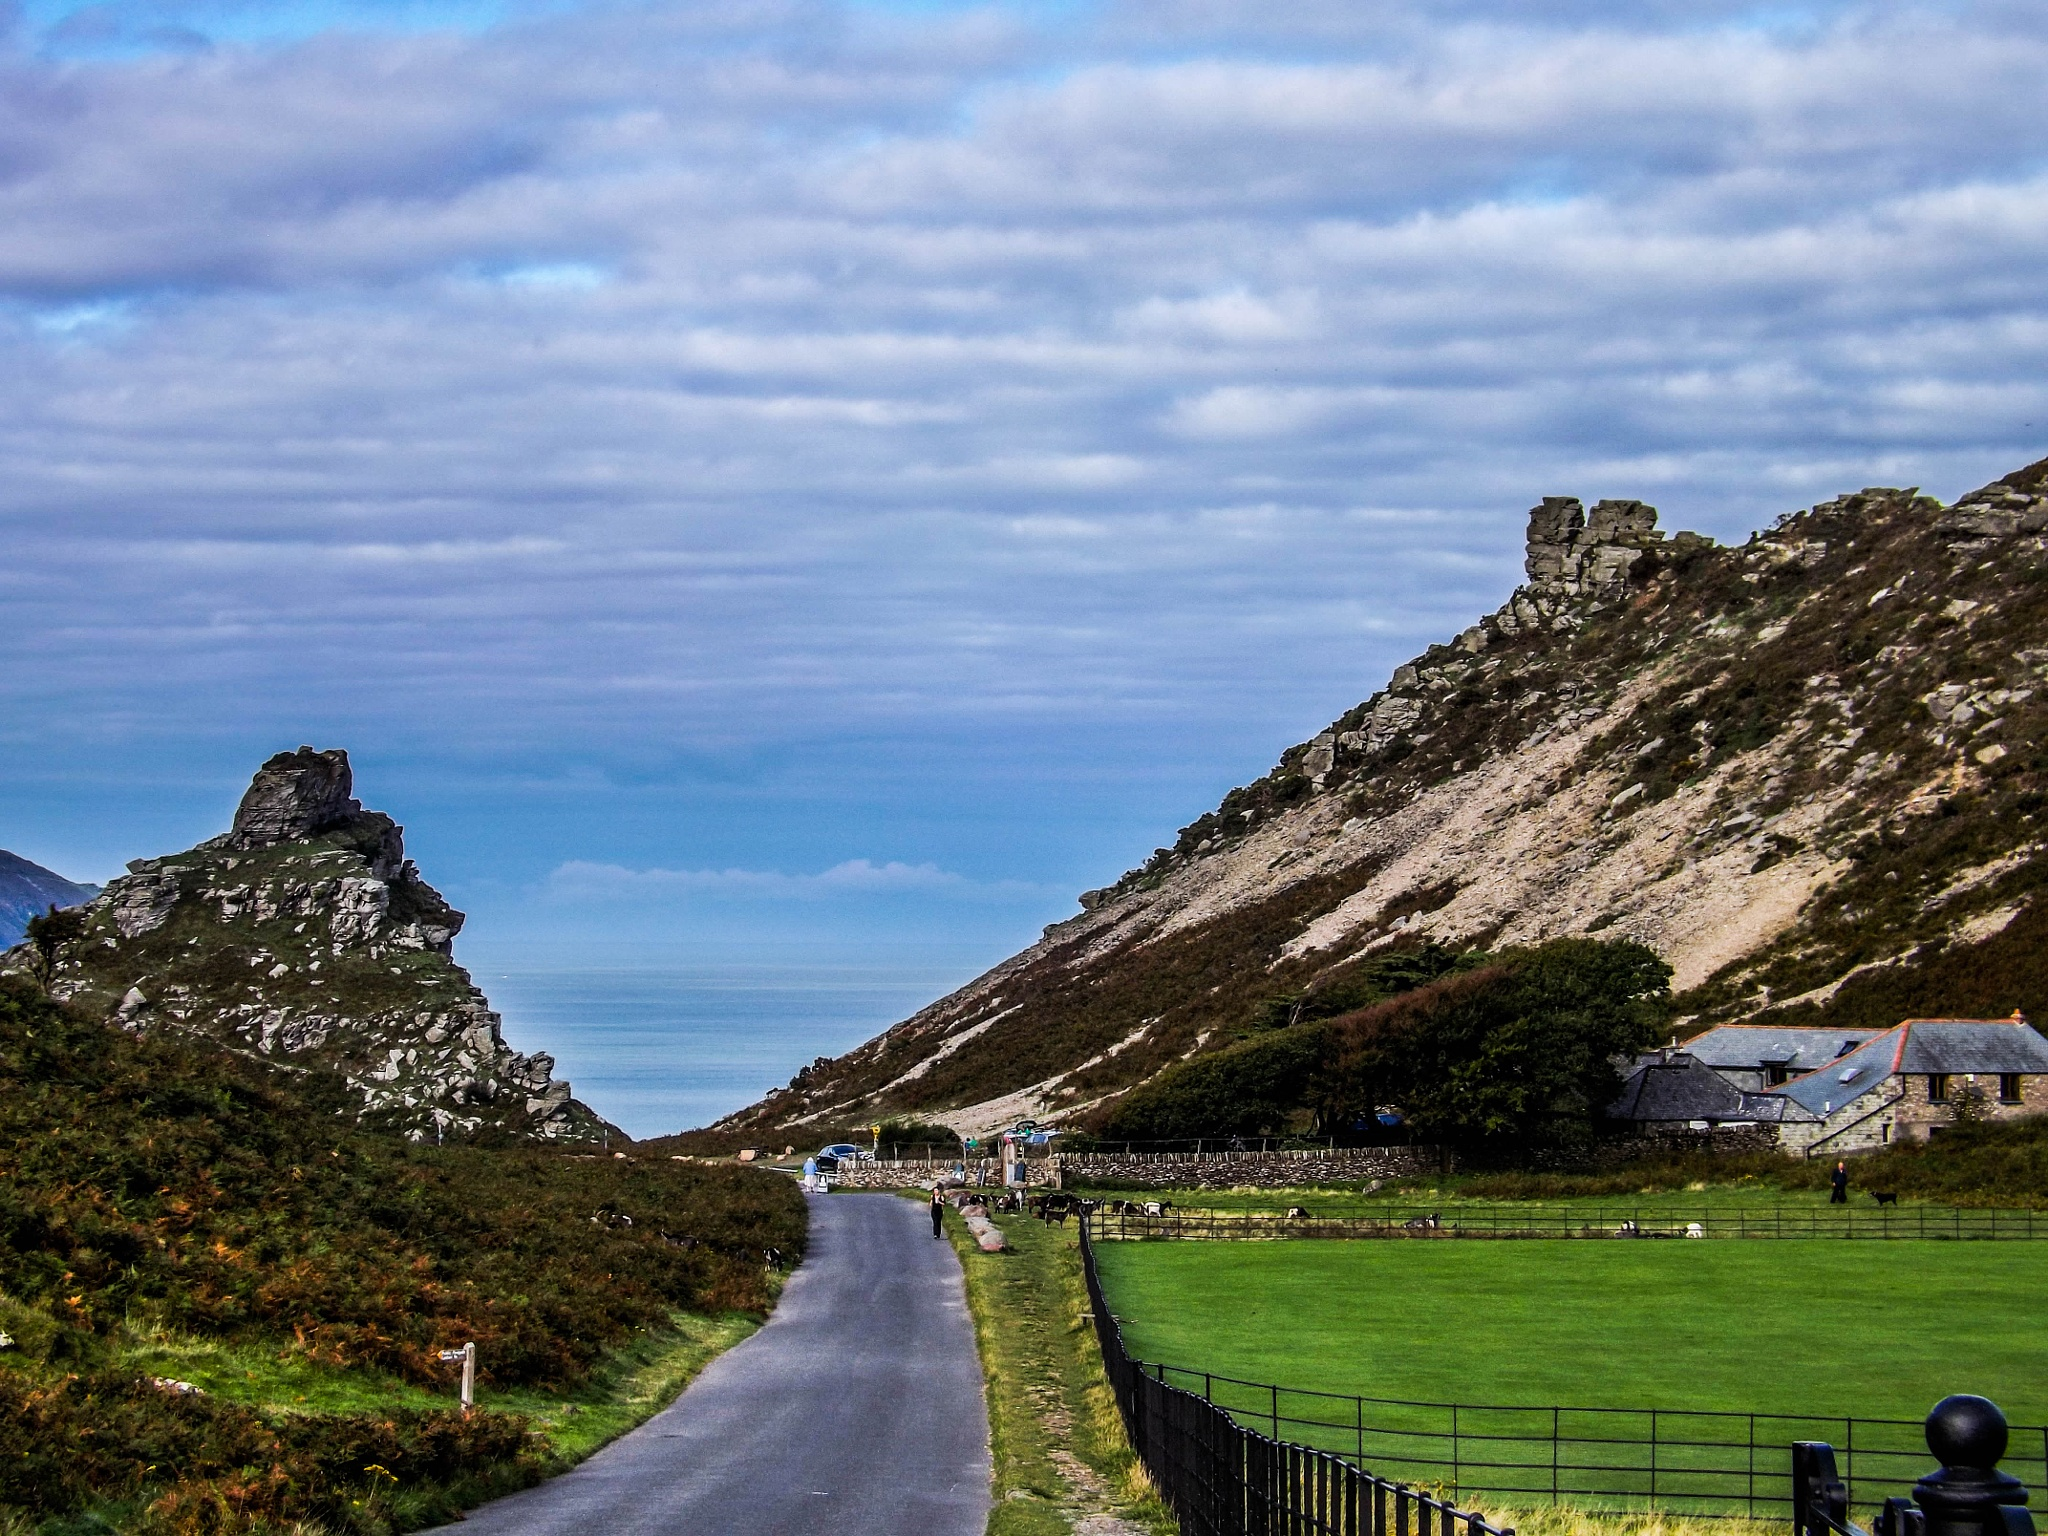 Valley of the Rocks by Gemma Sizer